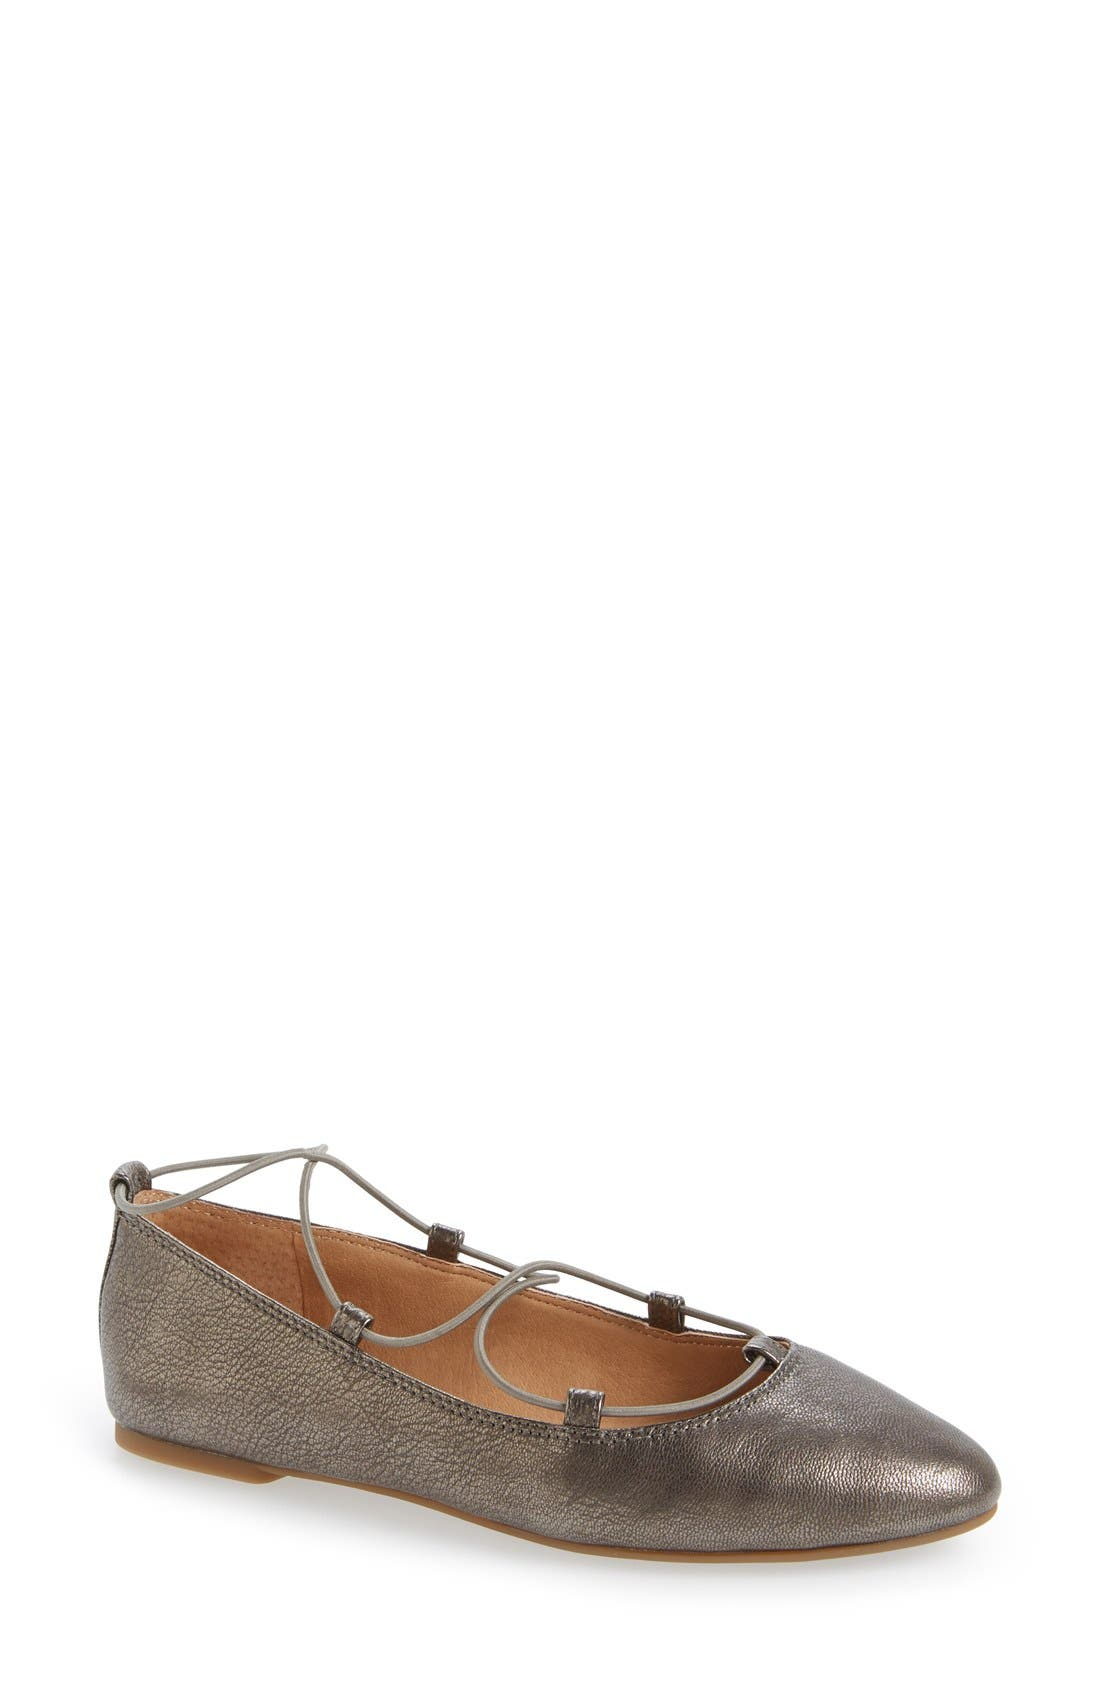 'Aviee' Lace-Up Flat,                             Main thumbnail 4, color,